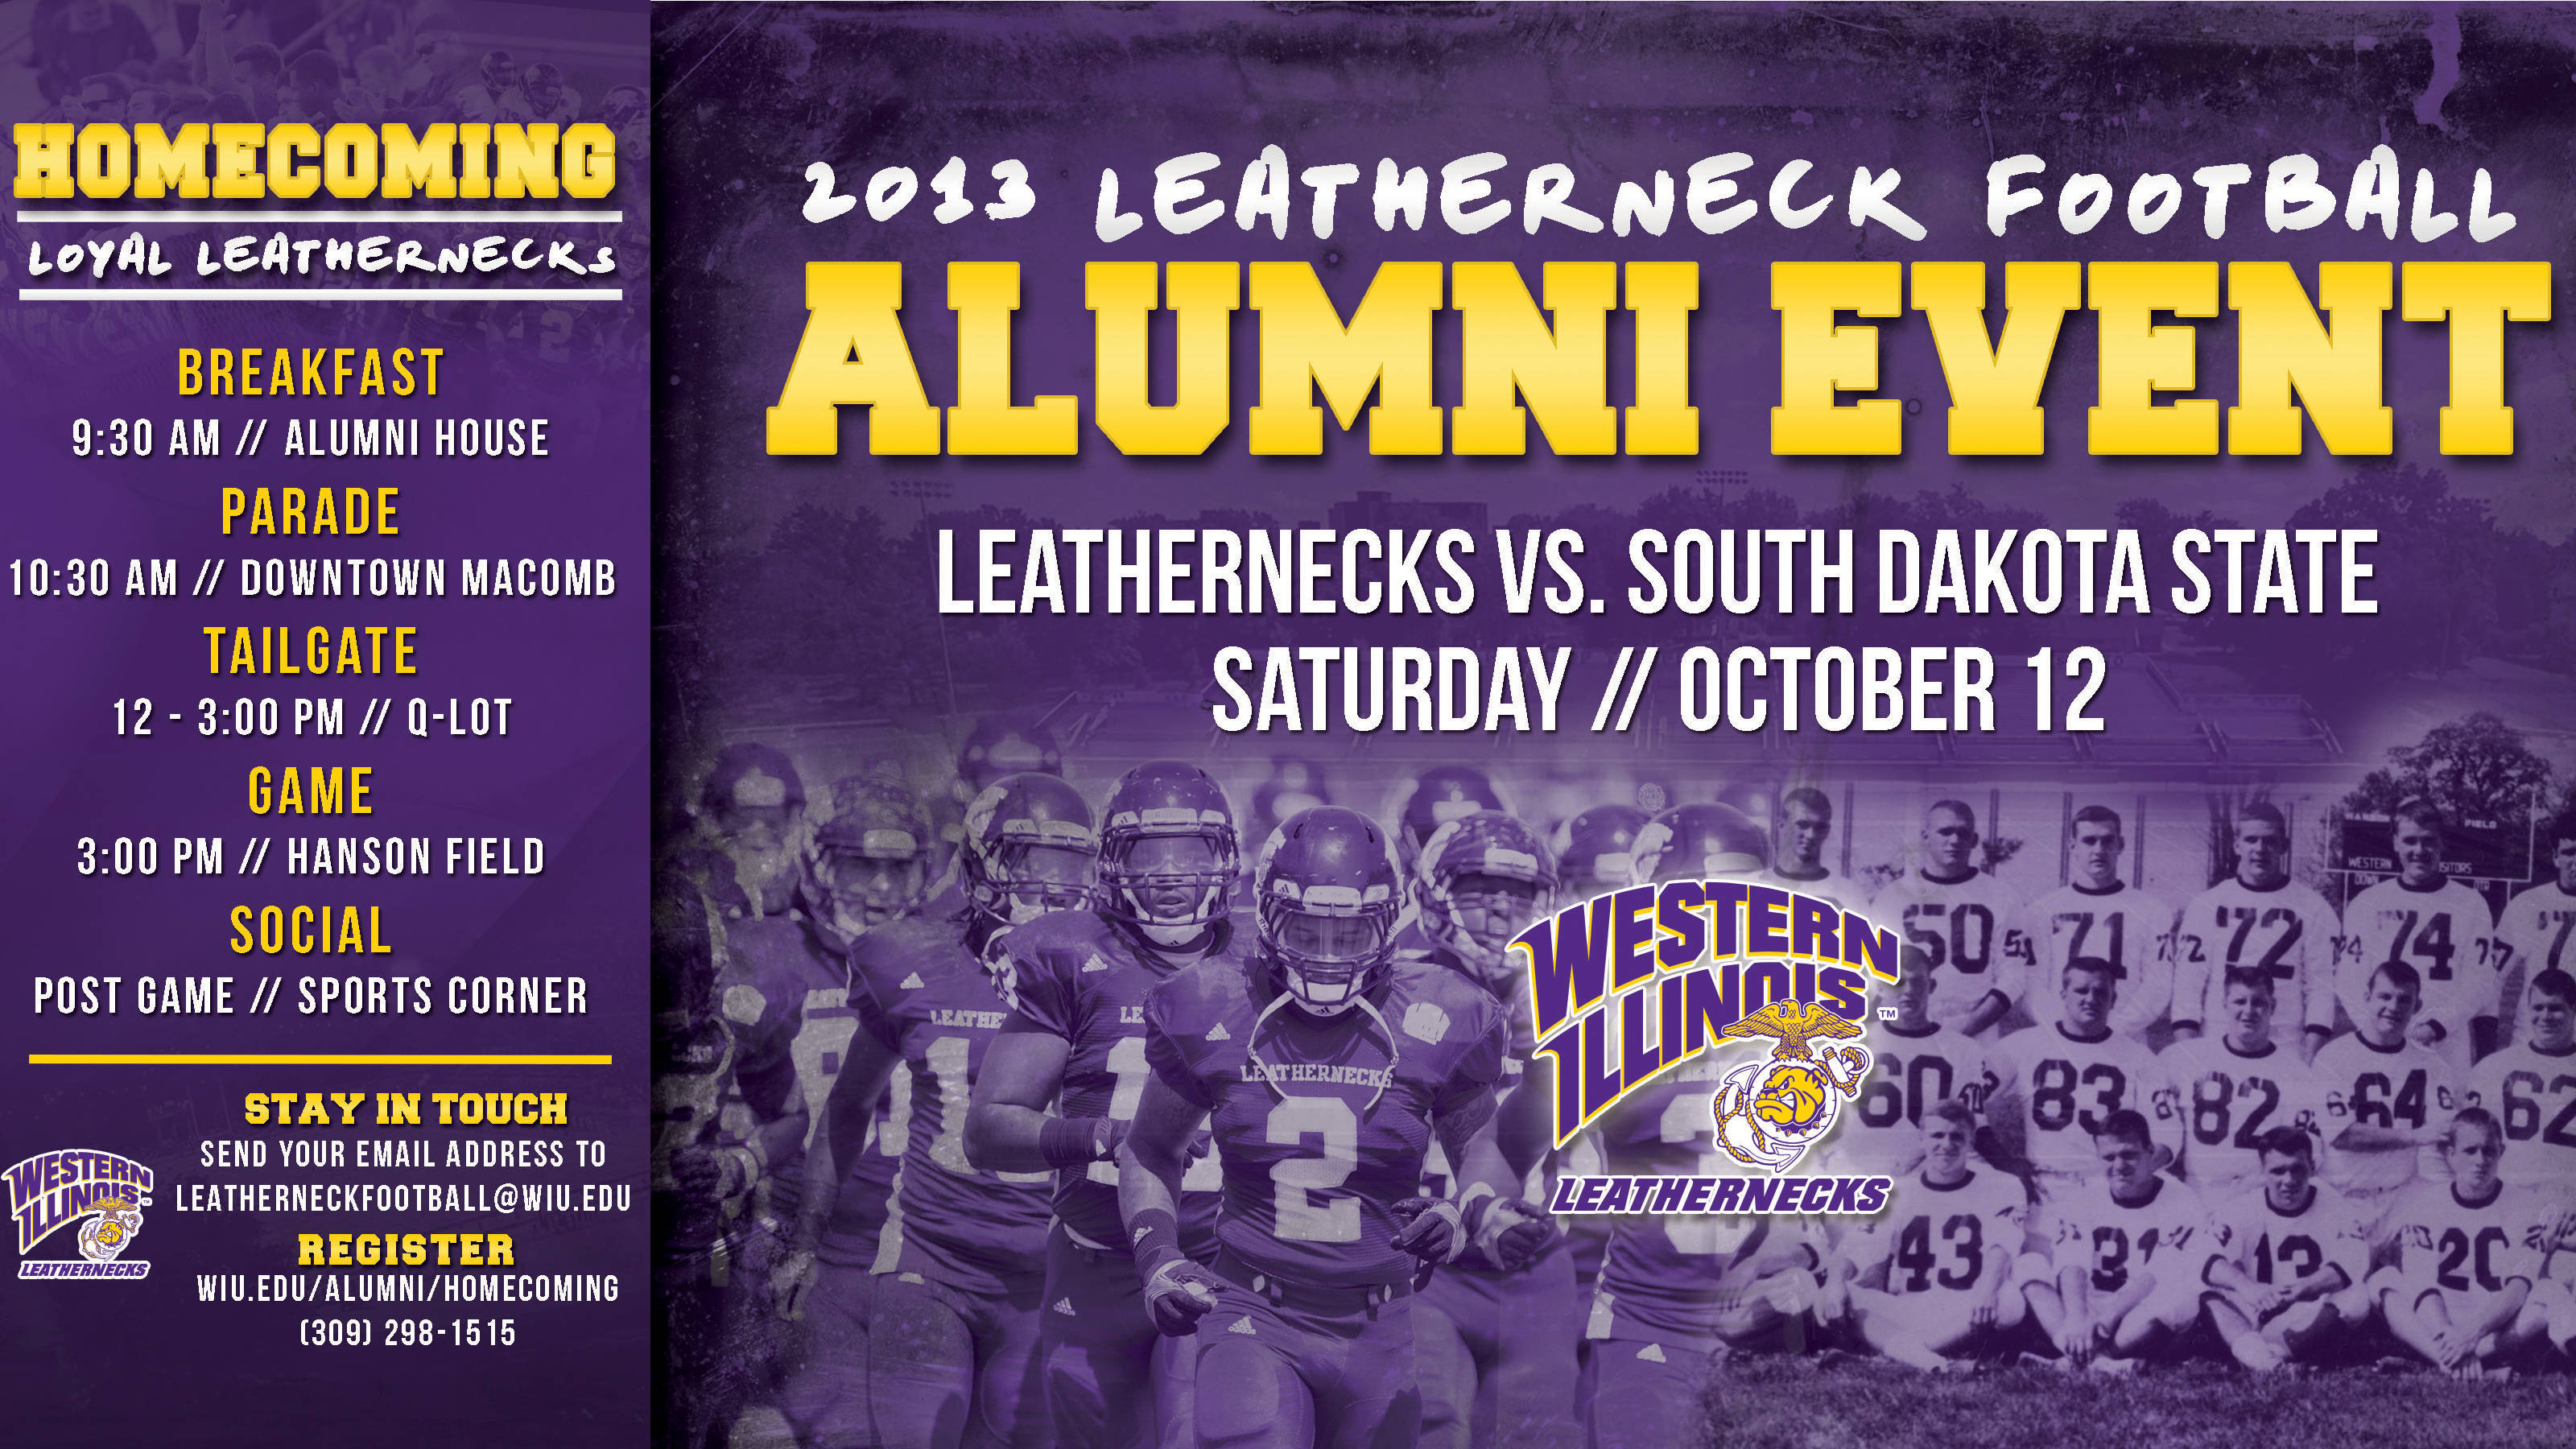 Leathernecks Shut Out South Dakota 1-0 - Western Illinois